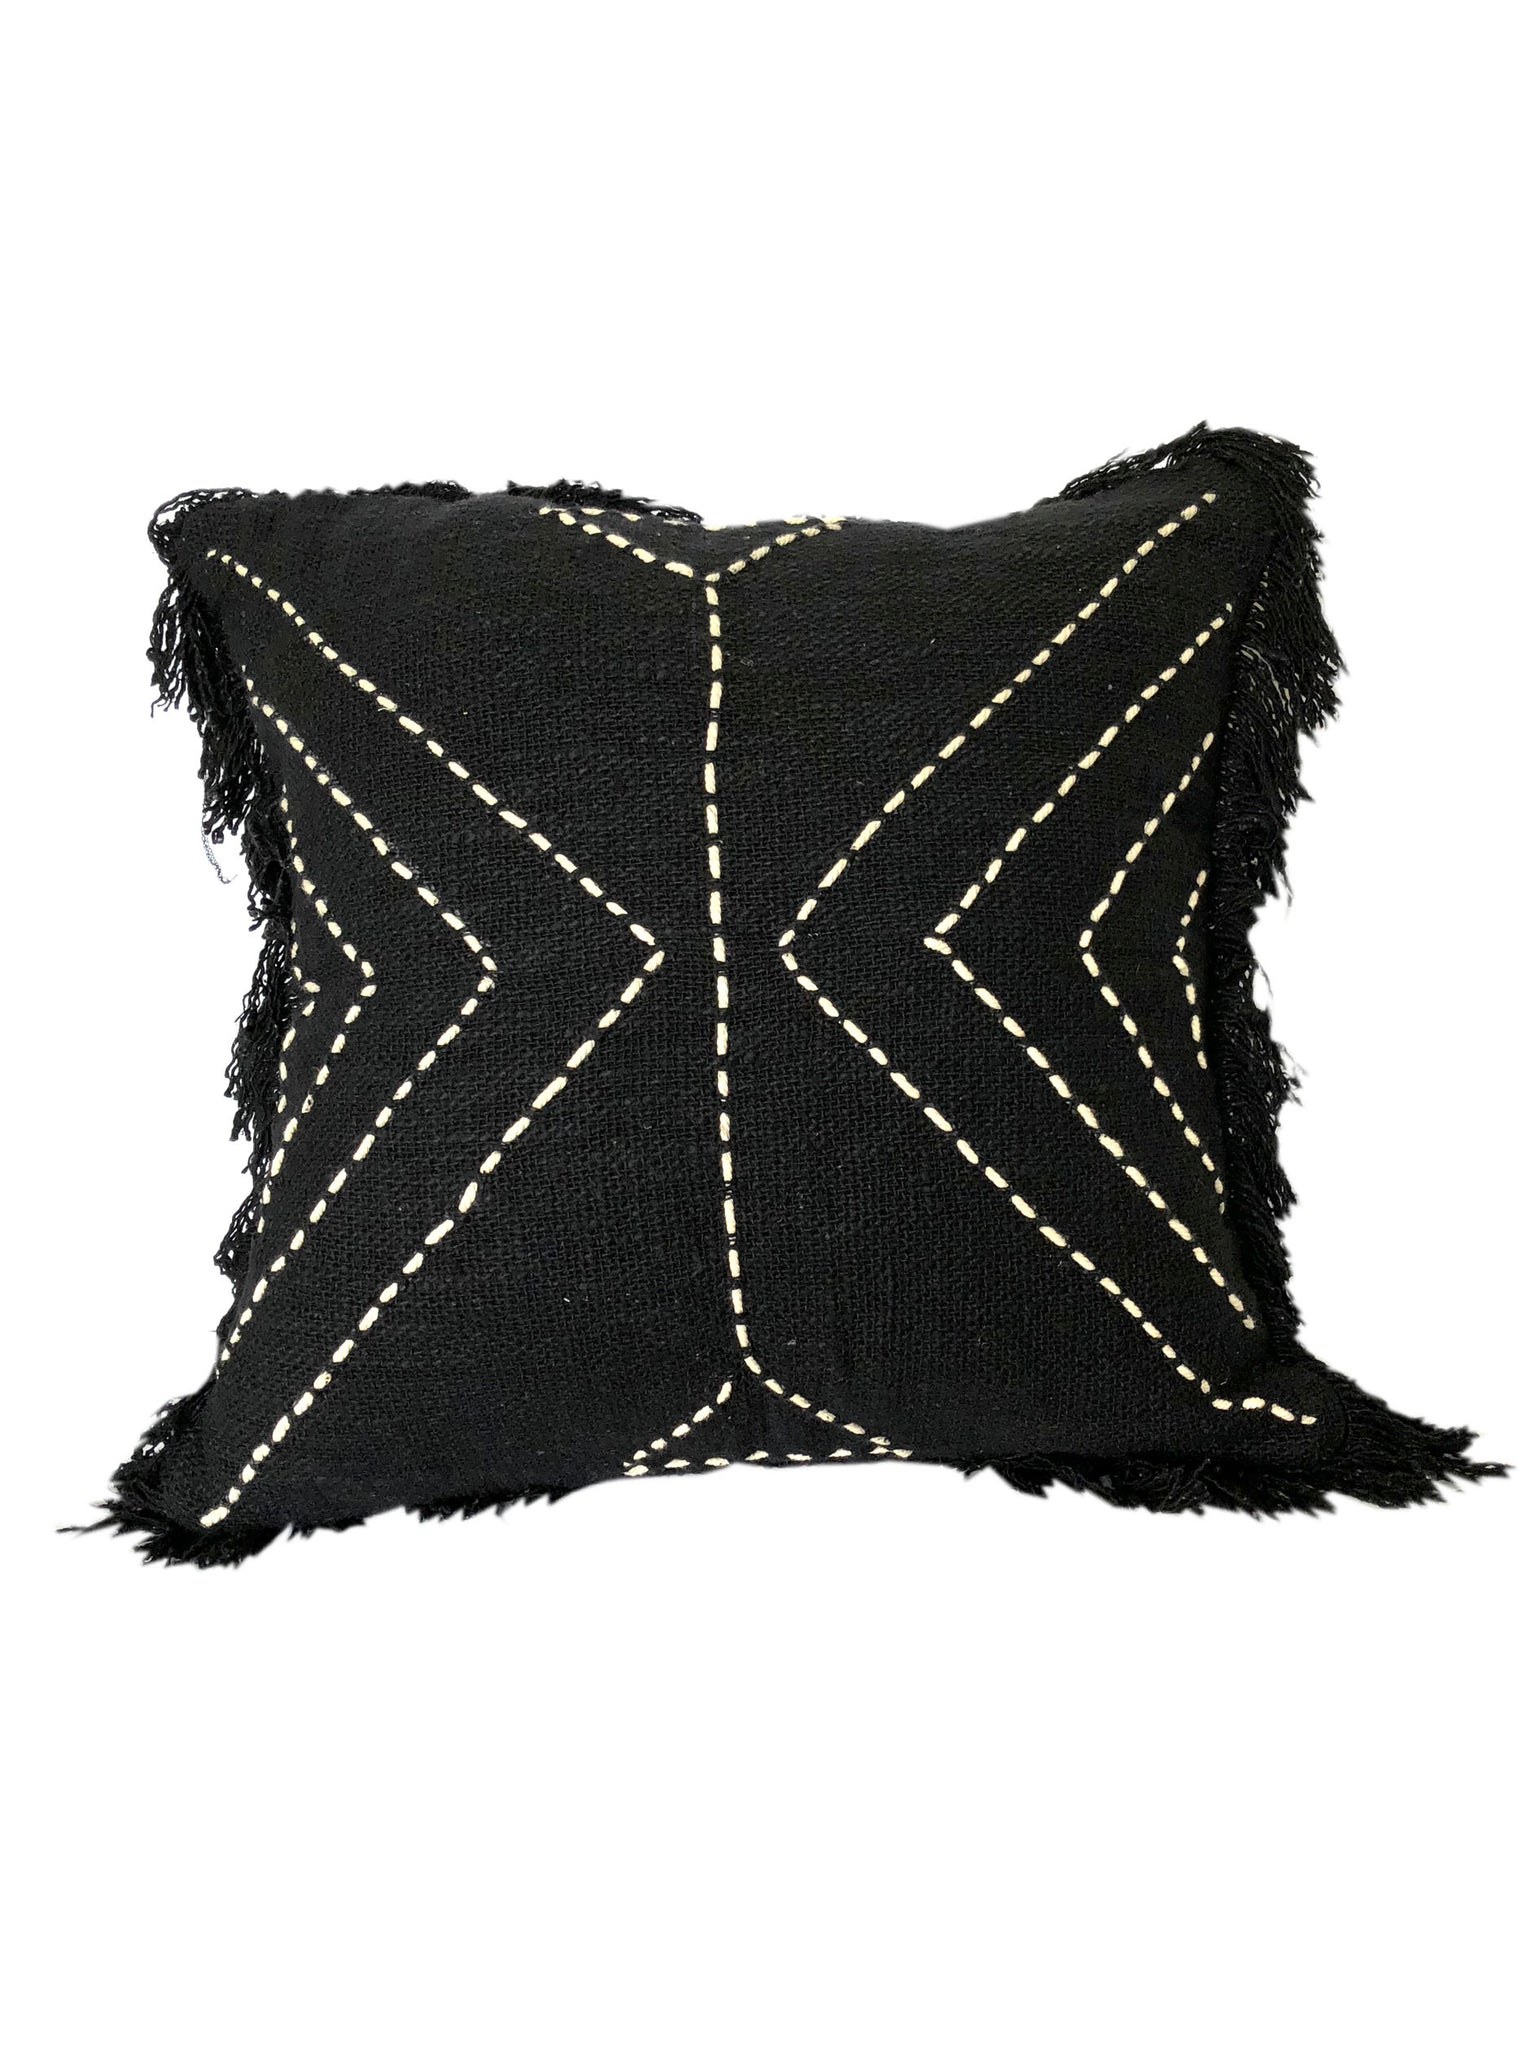 Tribal Black Textured & Embroidered w Fringe Cushion 50 x 50 cm